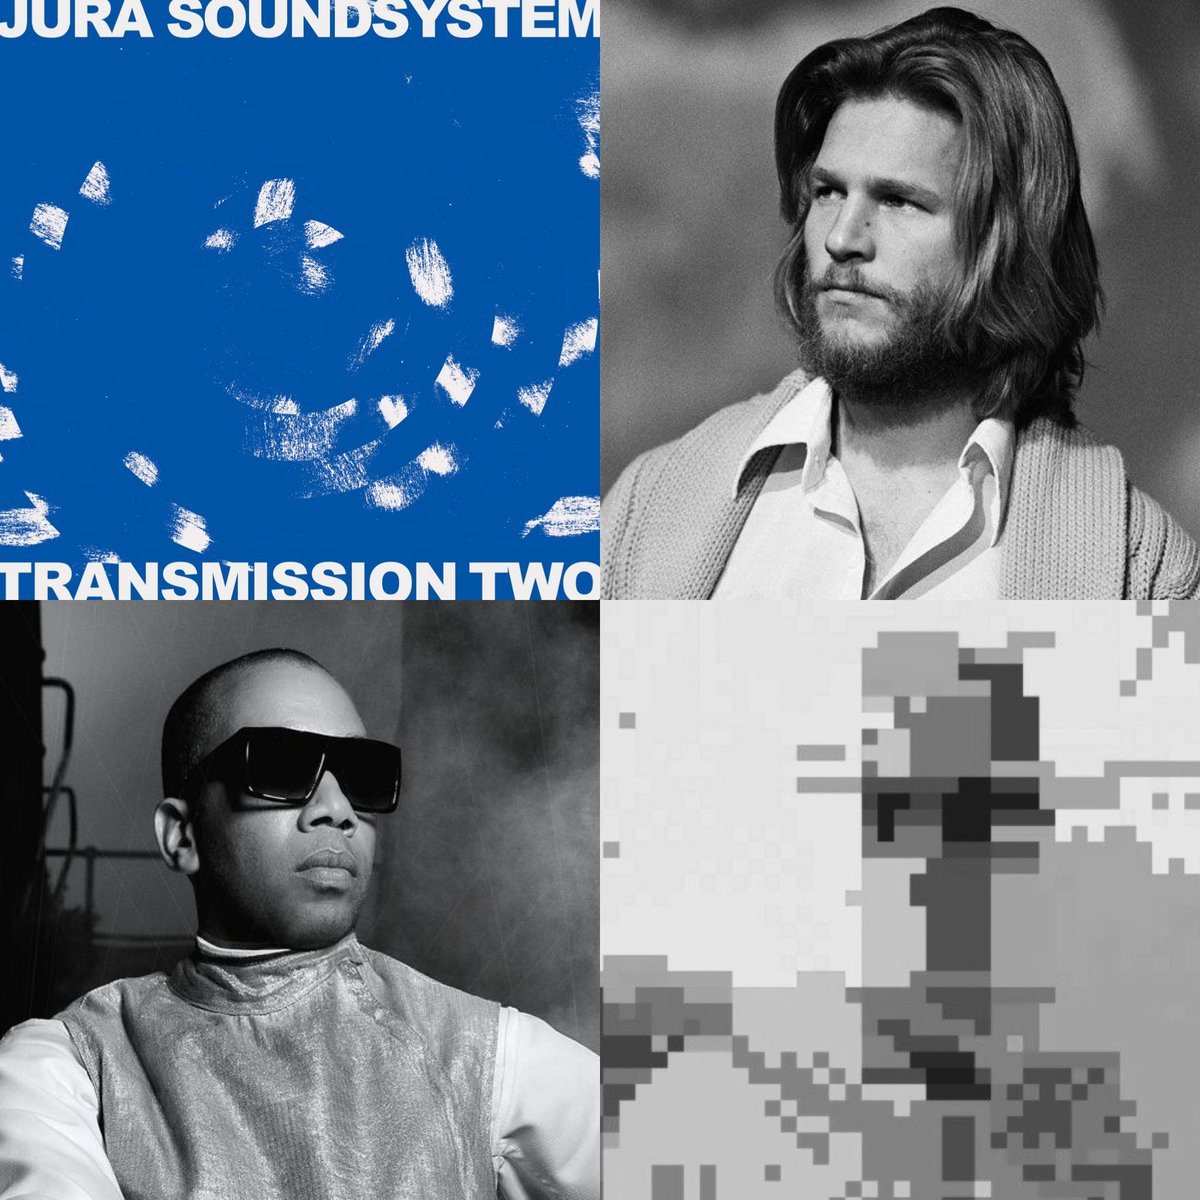 #CarlCraig, actor #JeffBridges and I among others contributed tracks for the 'Transmission Two' compilation (released March 13)  http://isleofjura.bandcamp.com/album/jura-soundsystem-presents-transmission-two…pic.twitter.com/CvKRIuIqp3